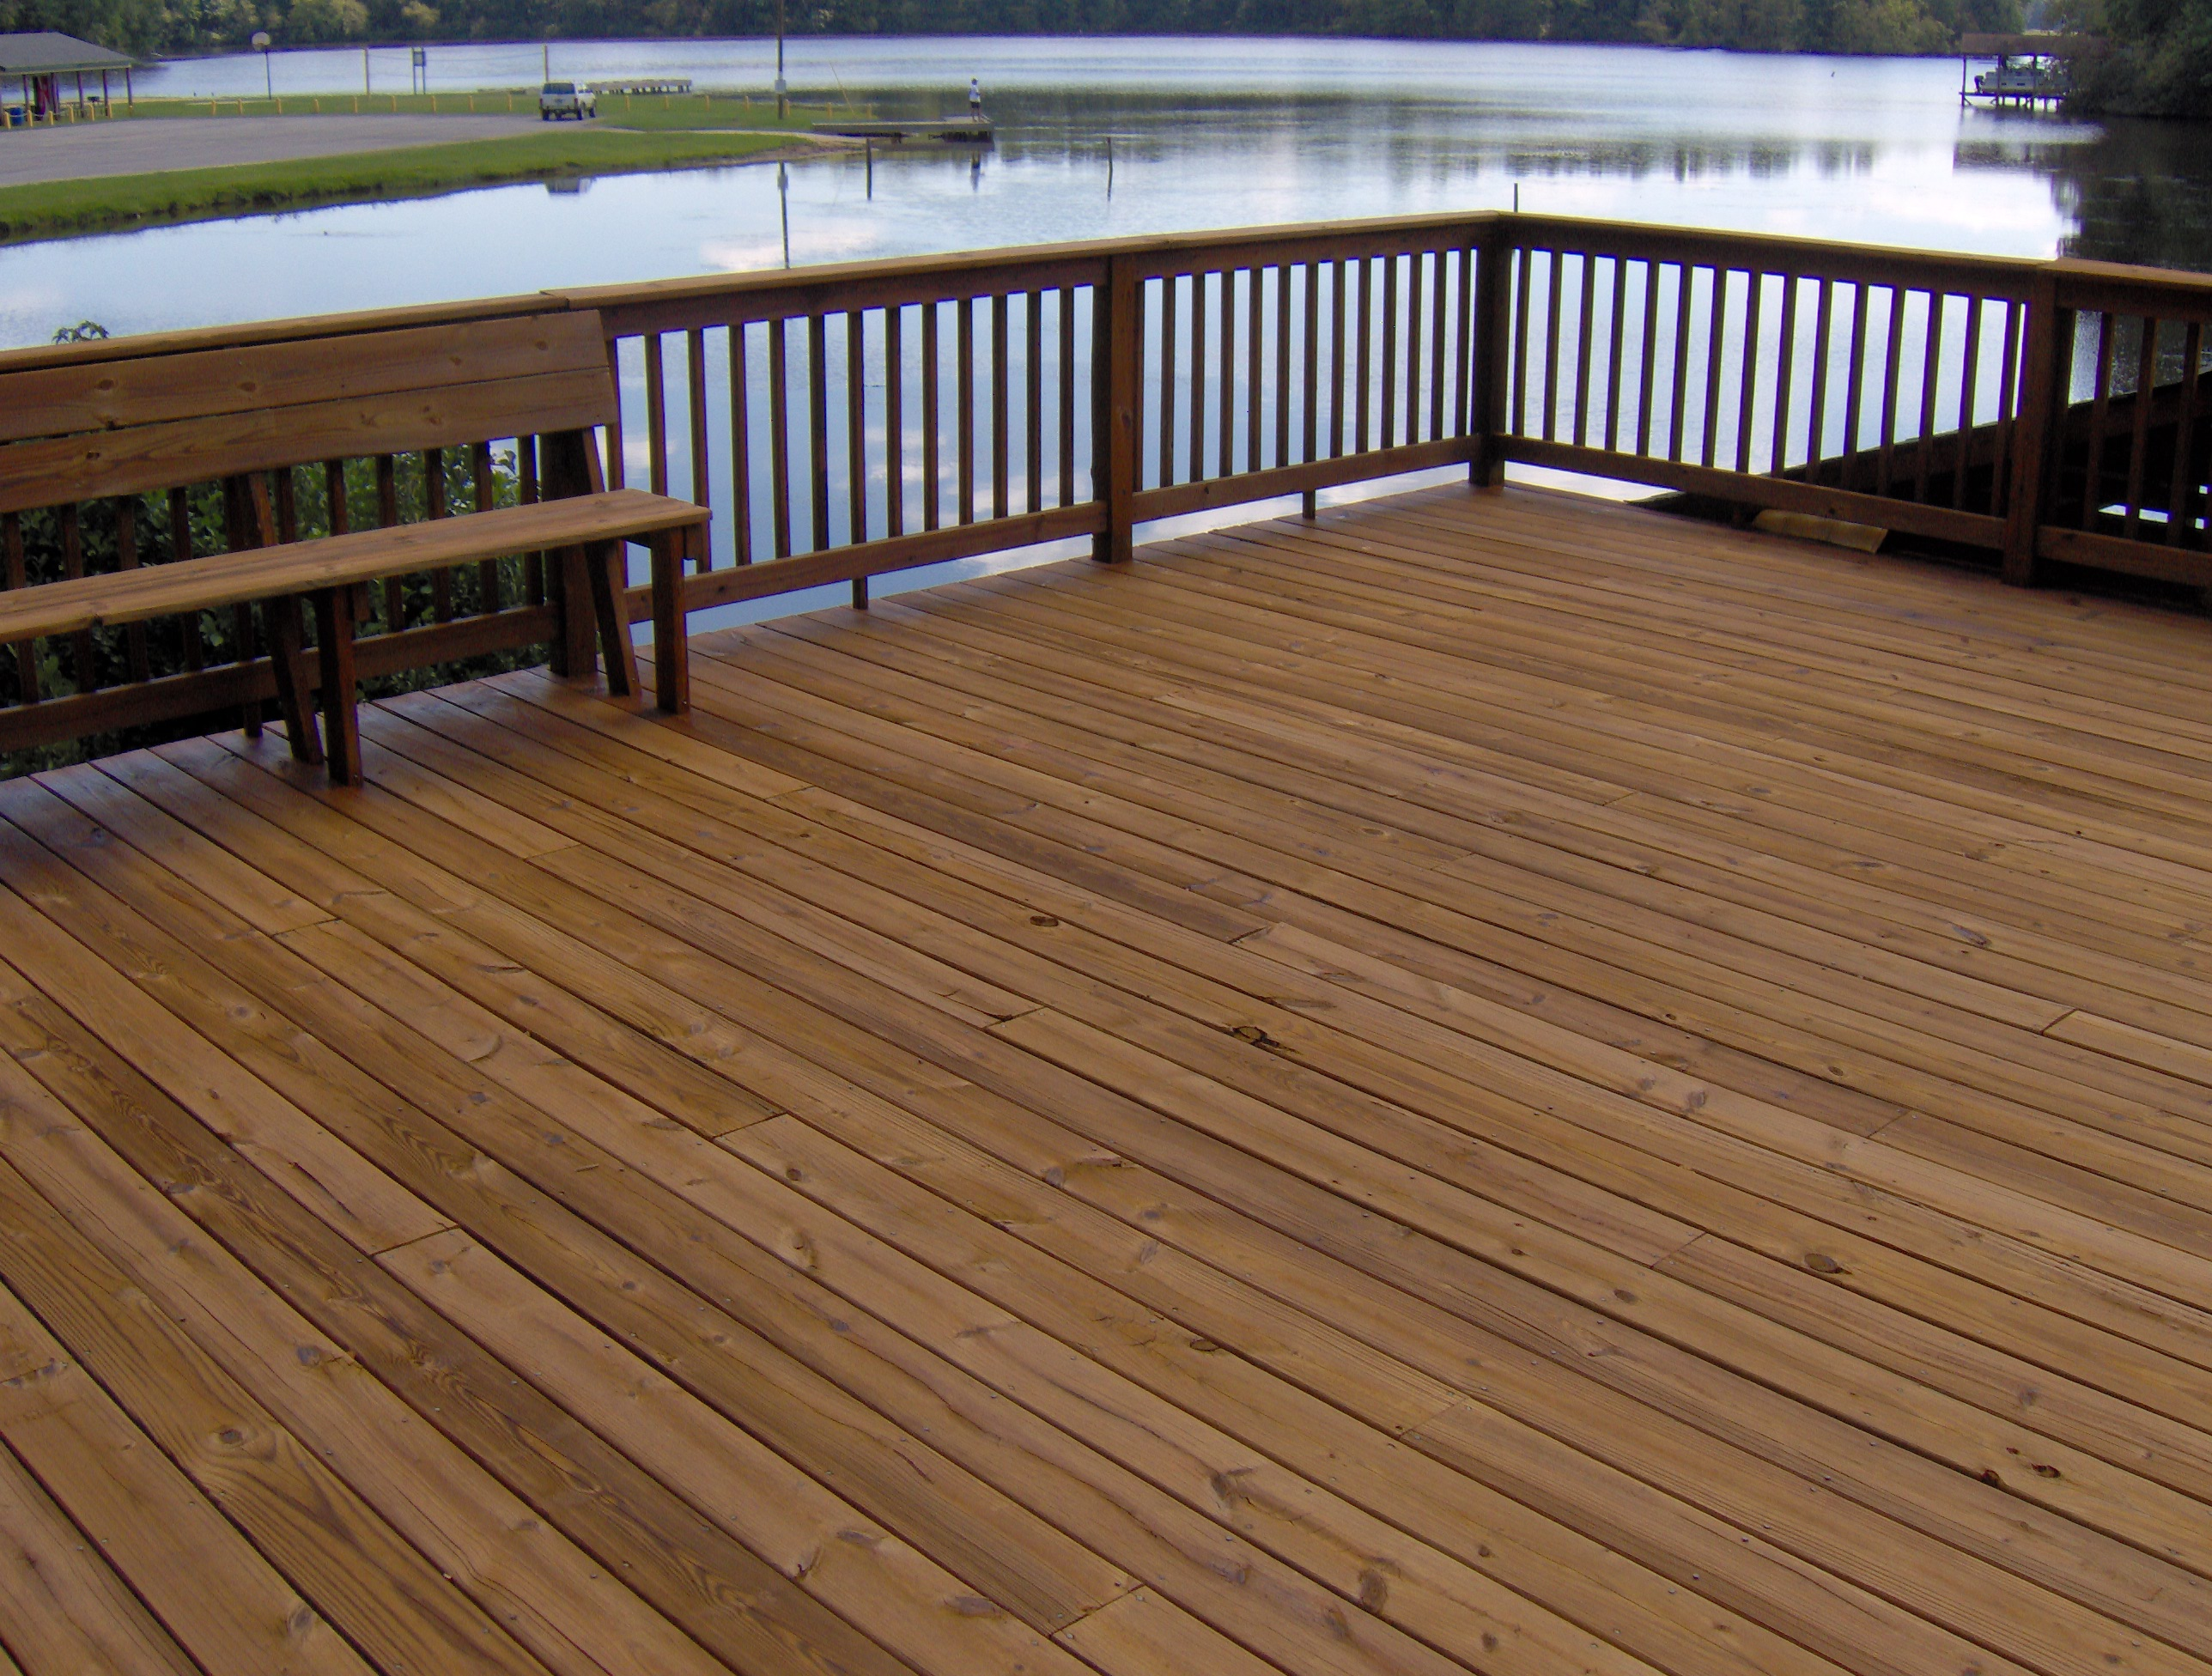 Decks docks renew crew of lake gaston kerr lake and Wood deck designs free